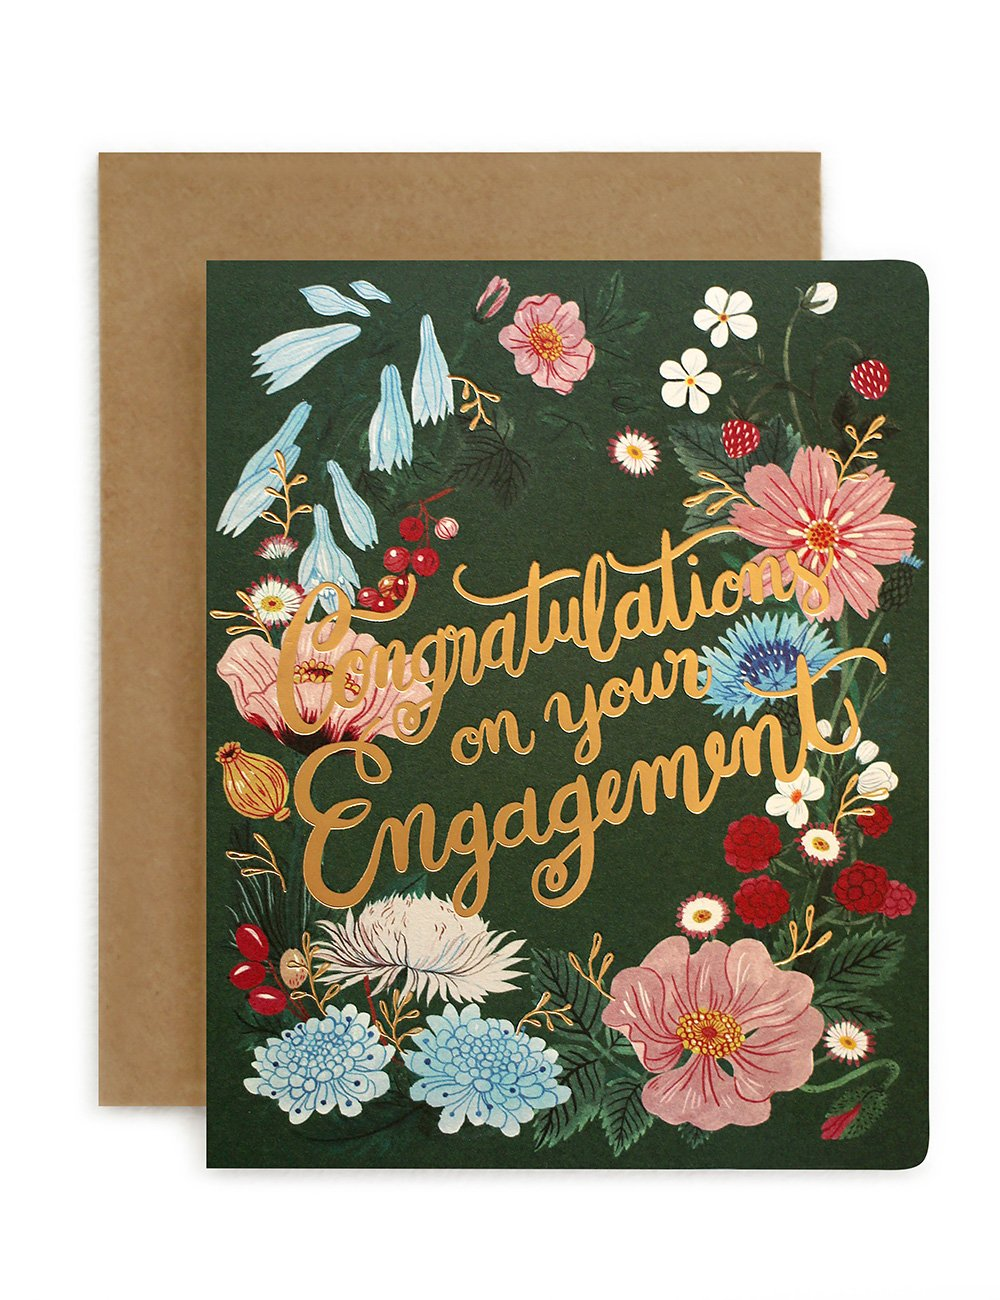 CONGRATULATIONS ON YOUR ENGAGEMENT BESPOKE LETTERPRESS